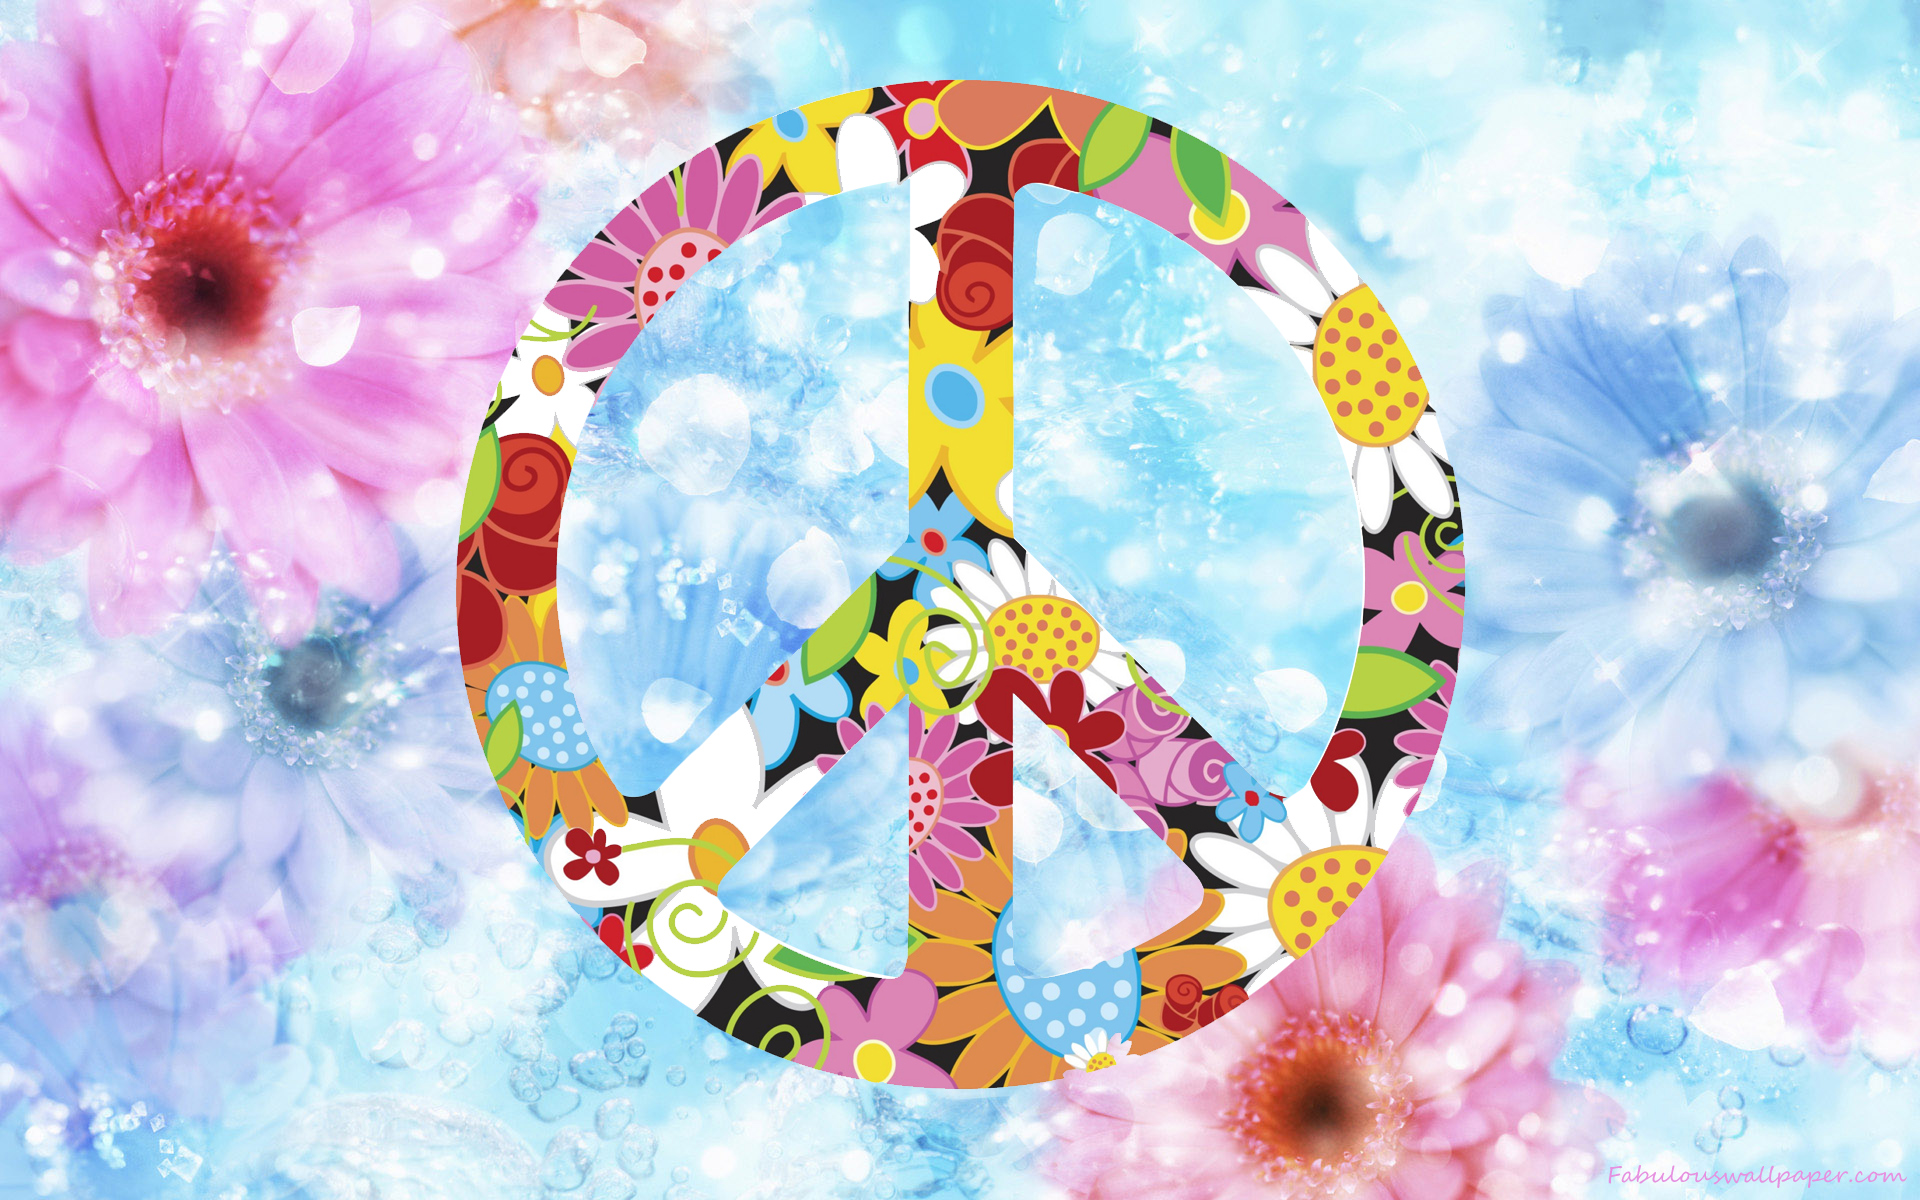 Peace Wallpaper 1920x1200